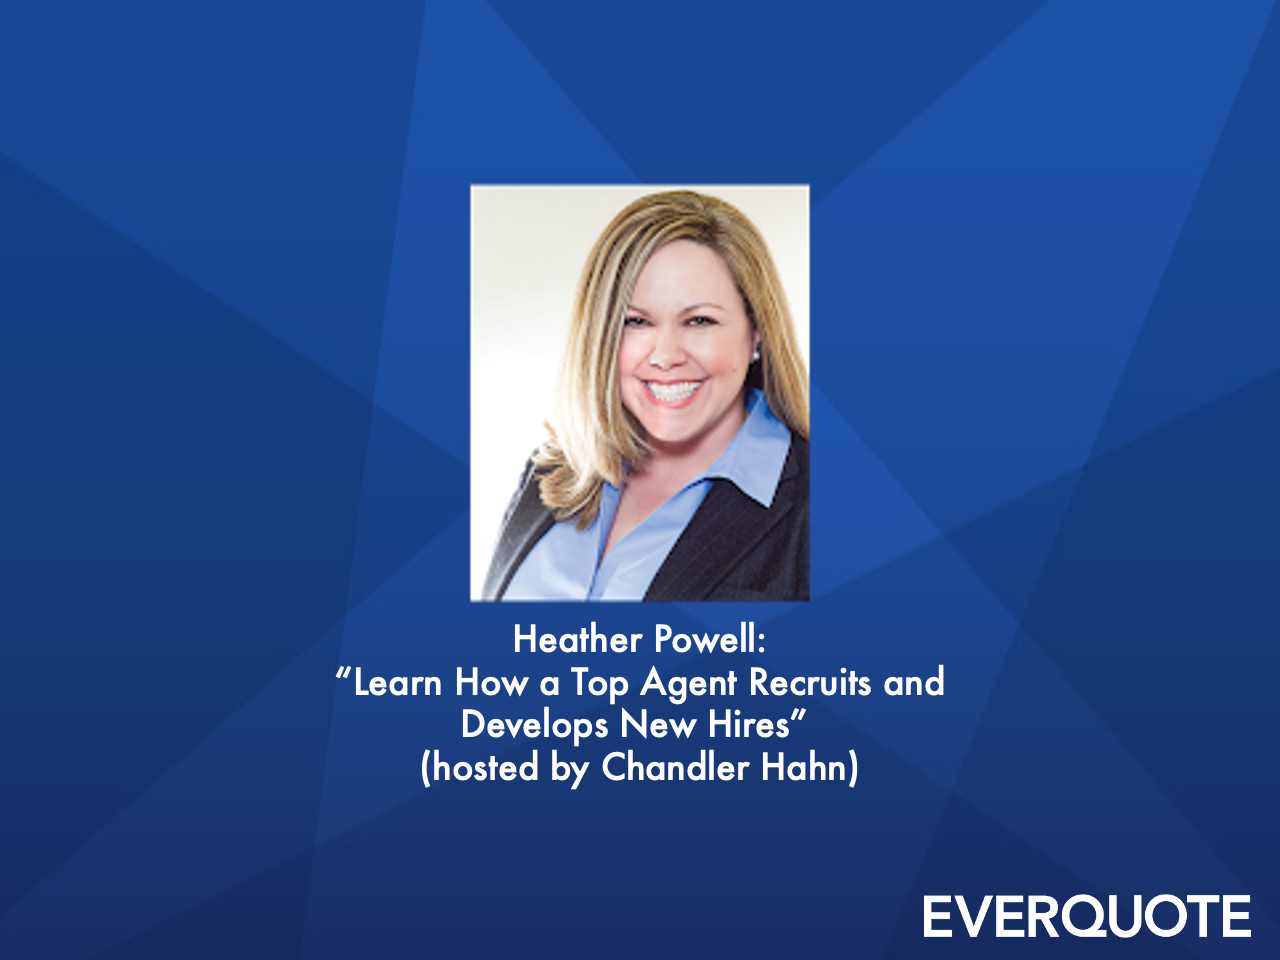 Learn How a Top Agent Recruits and Develops New Hires with Heather Powell